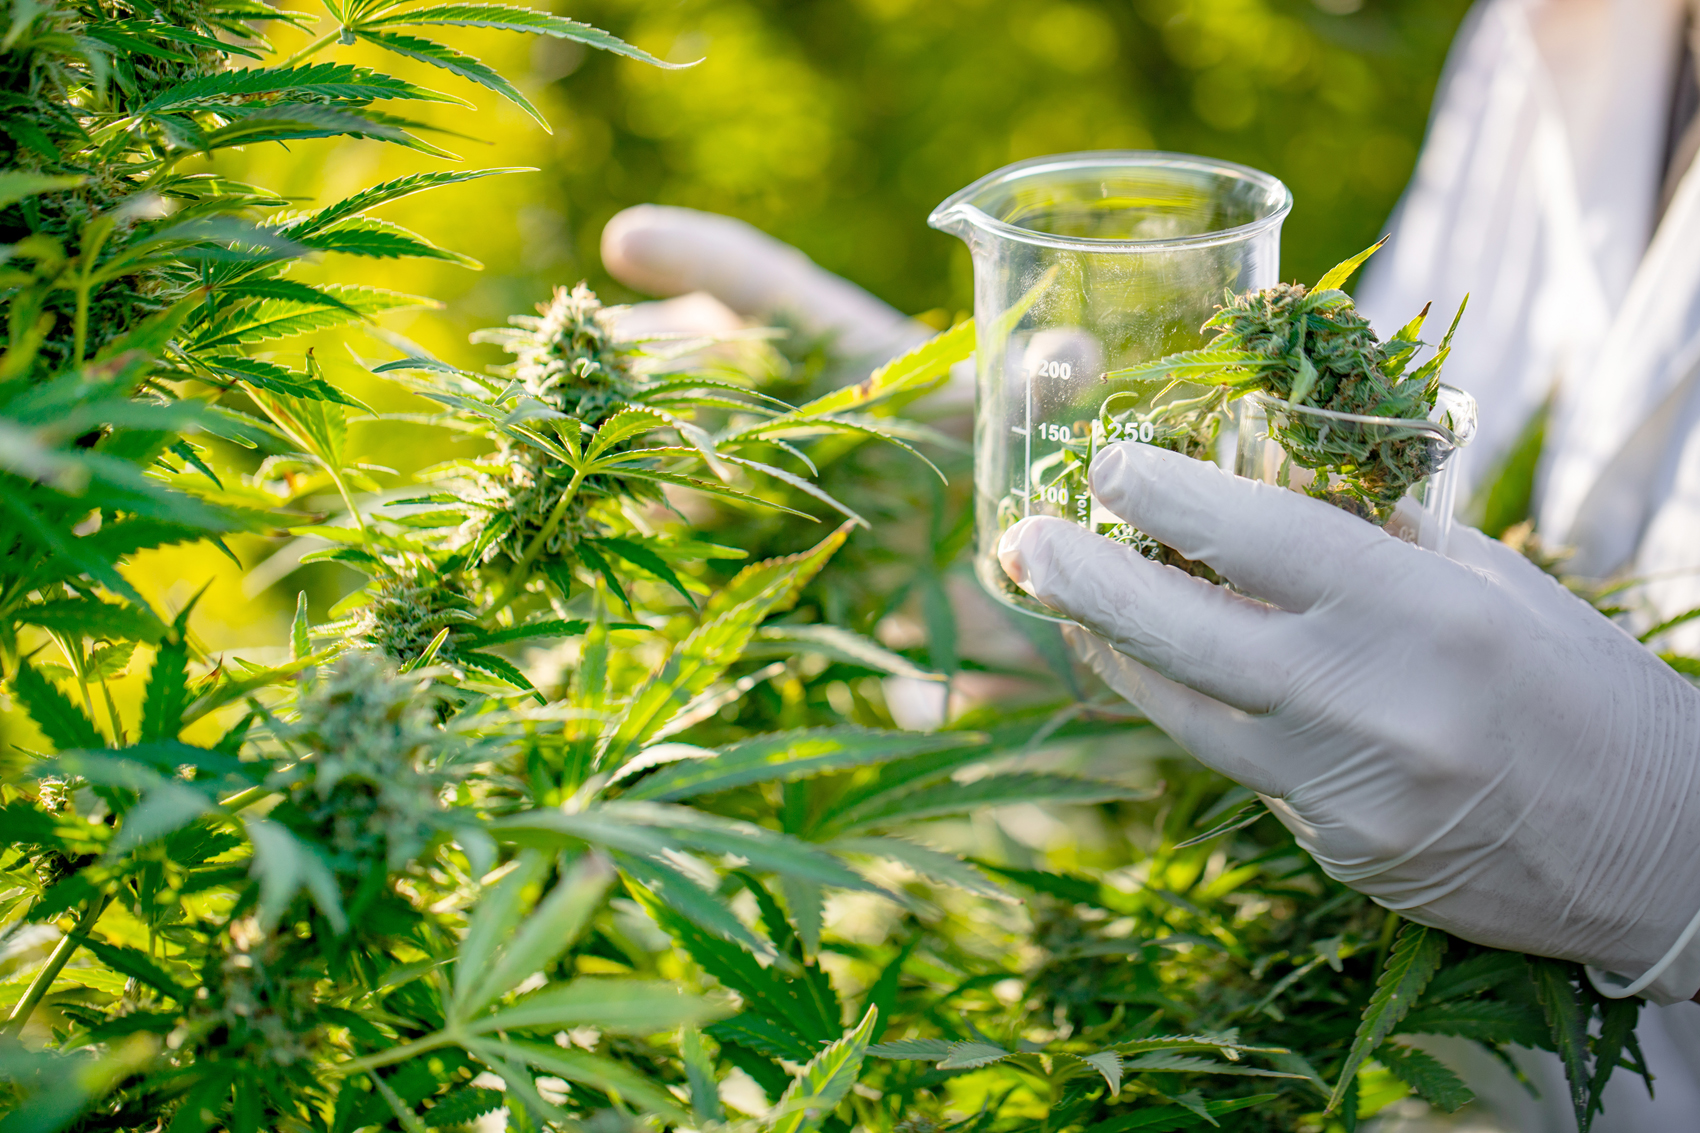 Researcher Taking a Few Cannabis Buds for Scientific Experiment.